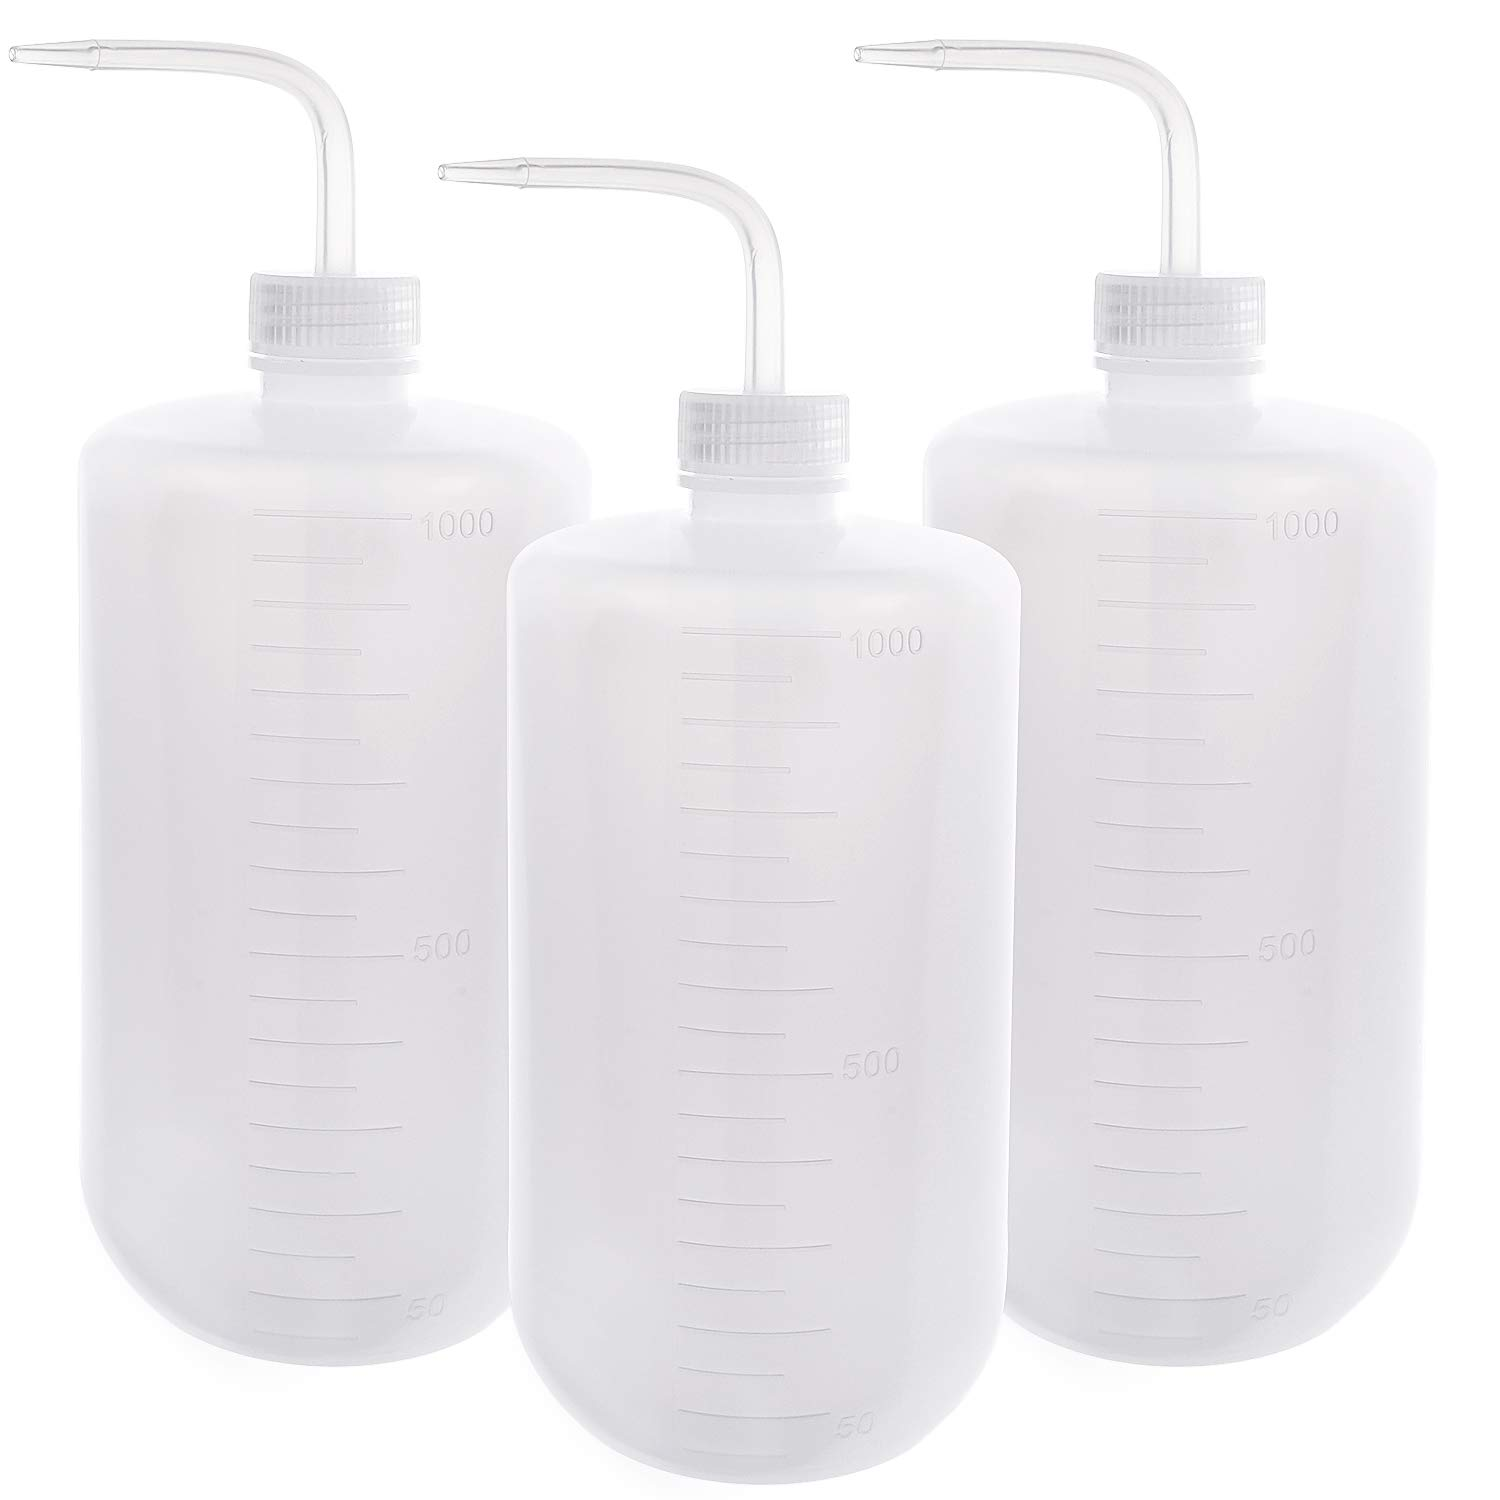 SUPERLELE 3pcs 1000ml LDPE Safety Wash Bottle, Plastic Squeeze Tattoo Bottle Medical Squirt Wash Bottle